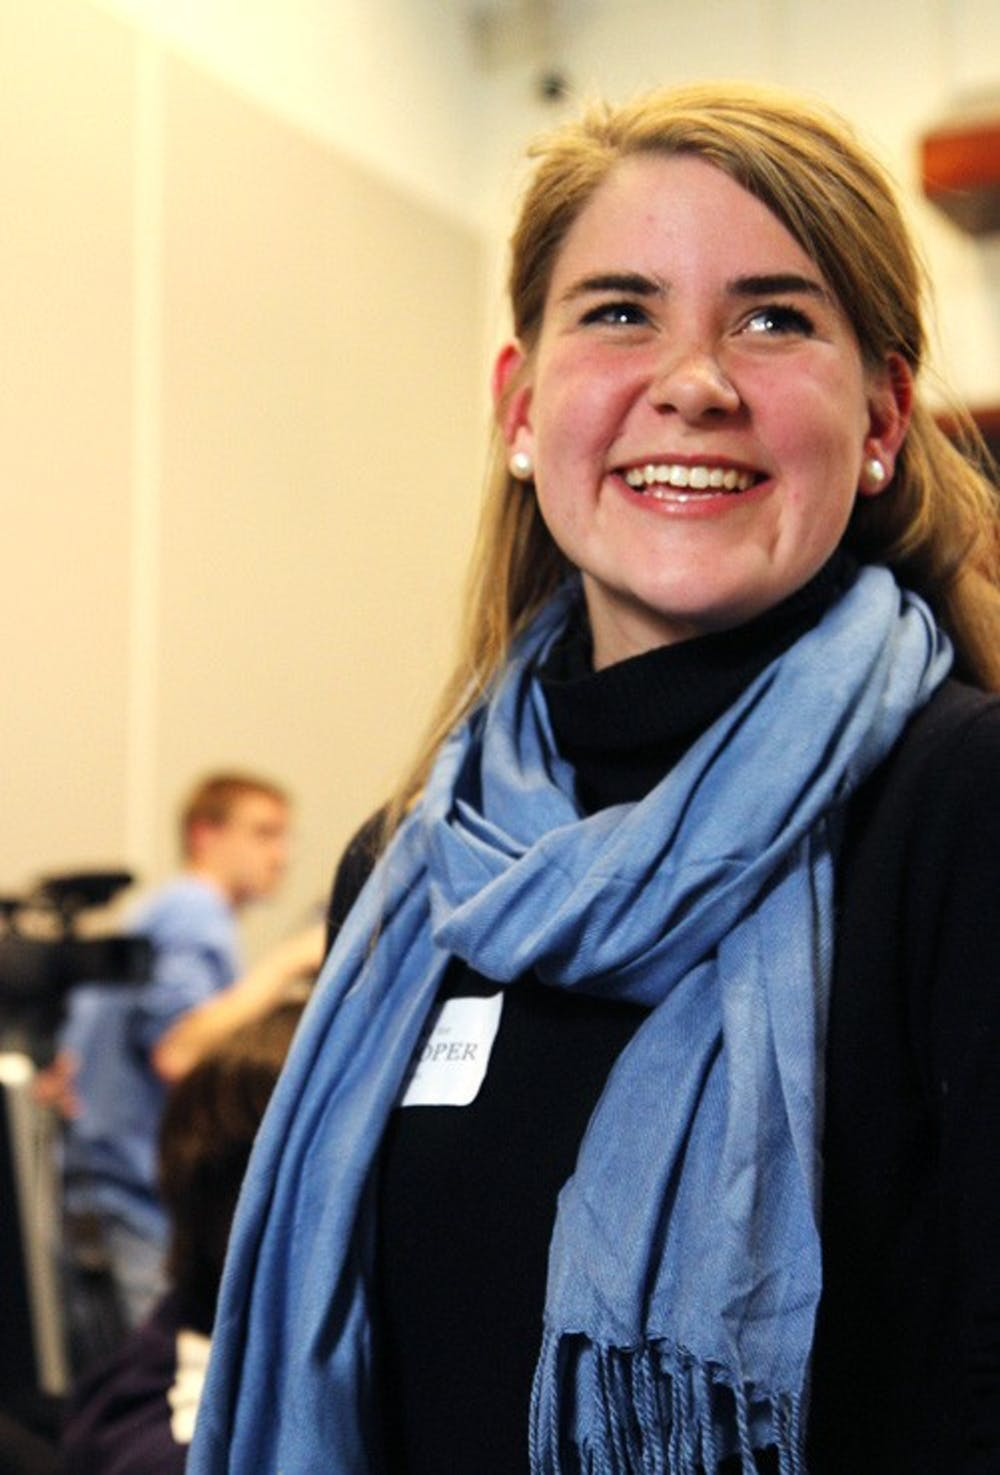 <p>Junior Mary Cooper is moving forward with the four main planks of her platform in her first week as UNC's student body president-elect.</p>